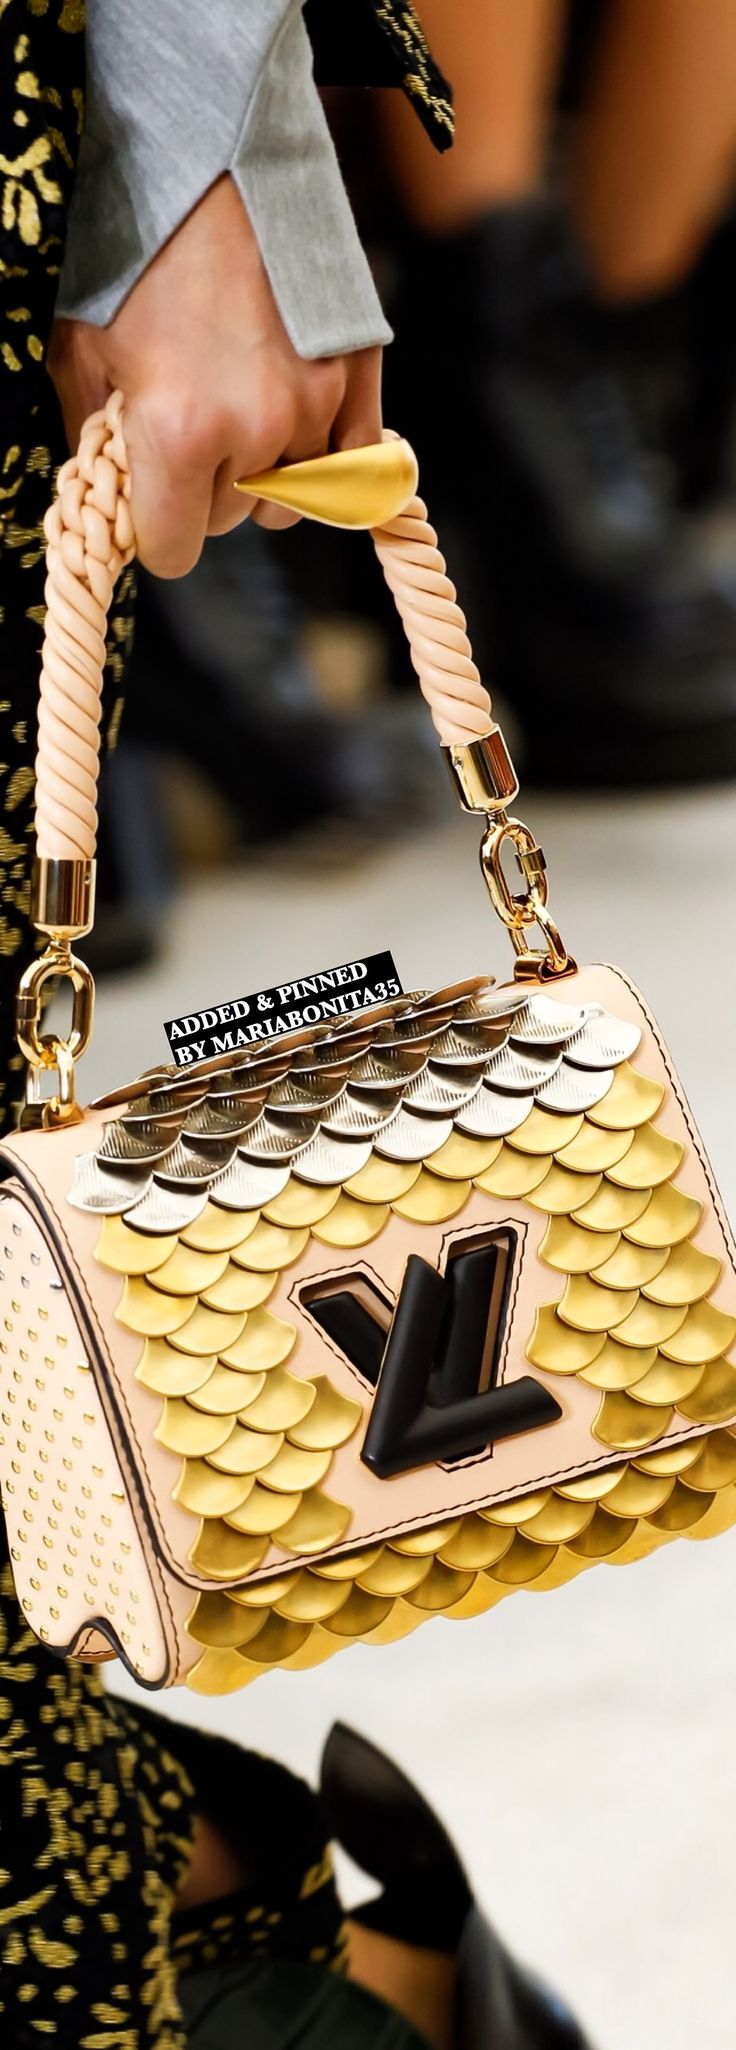 Louis Vuitton Spring-2017 Ready to Wear Collection Highlights